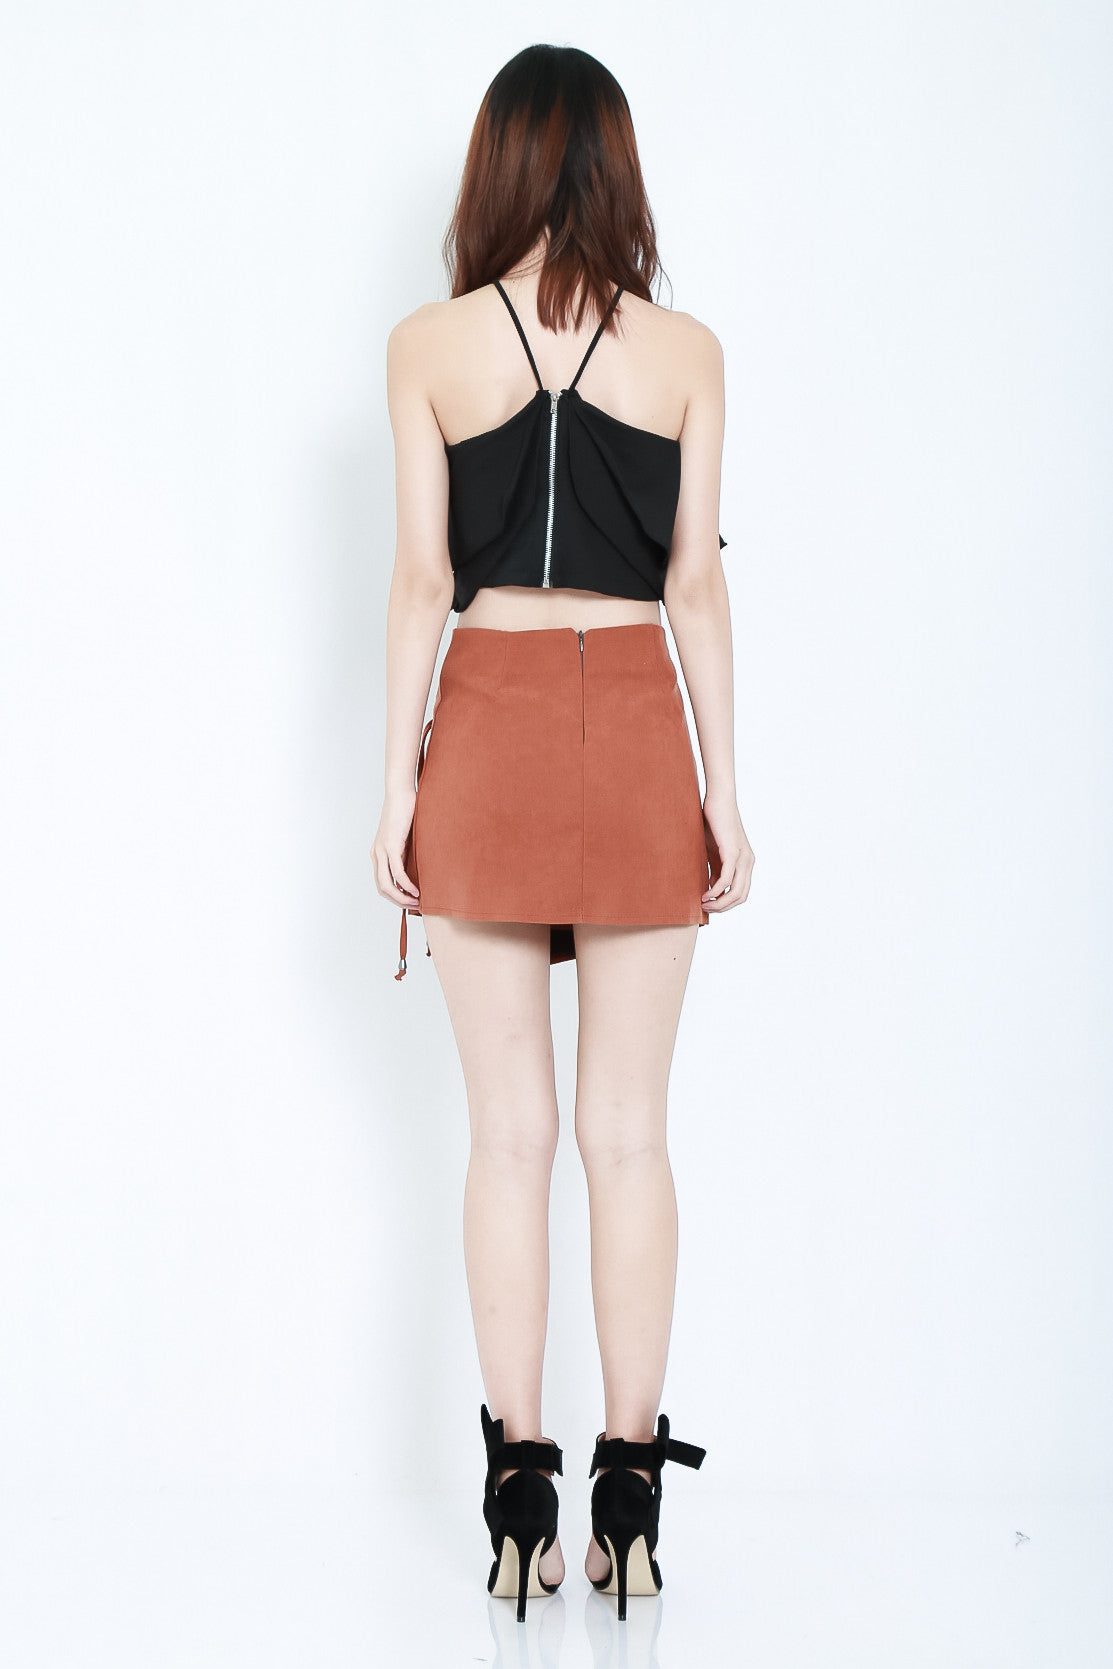 ASYMMETRICAL LACED UP SKIRT IN KHAKI - TOPAZETTE